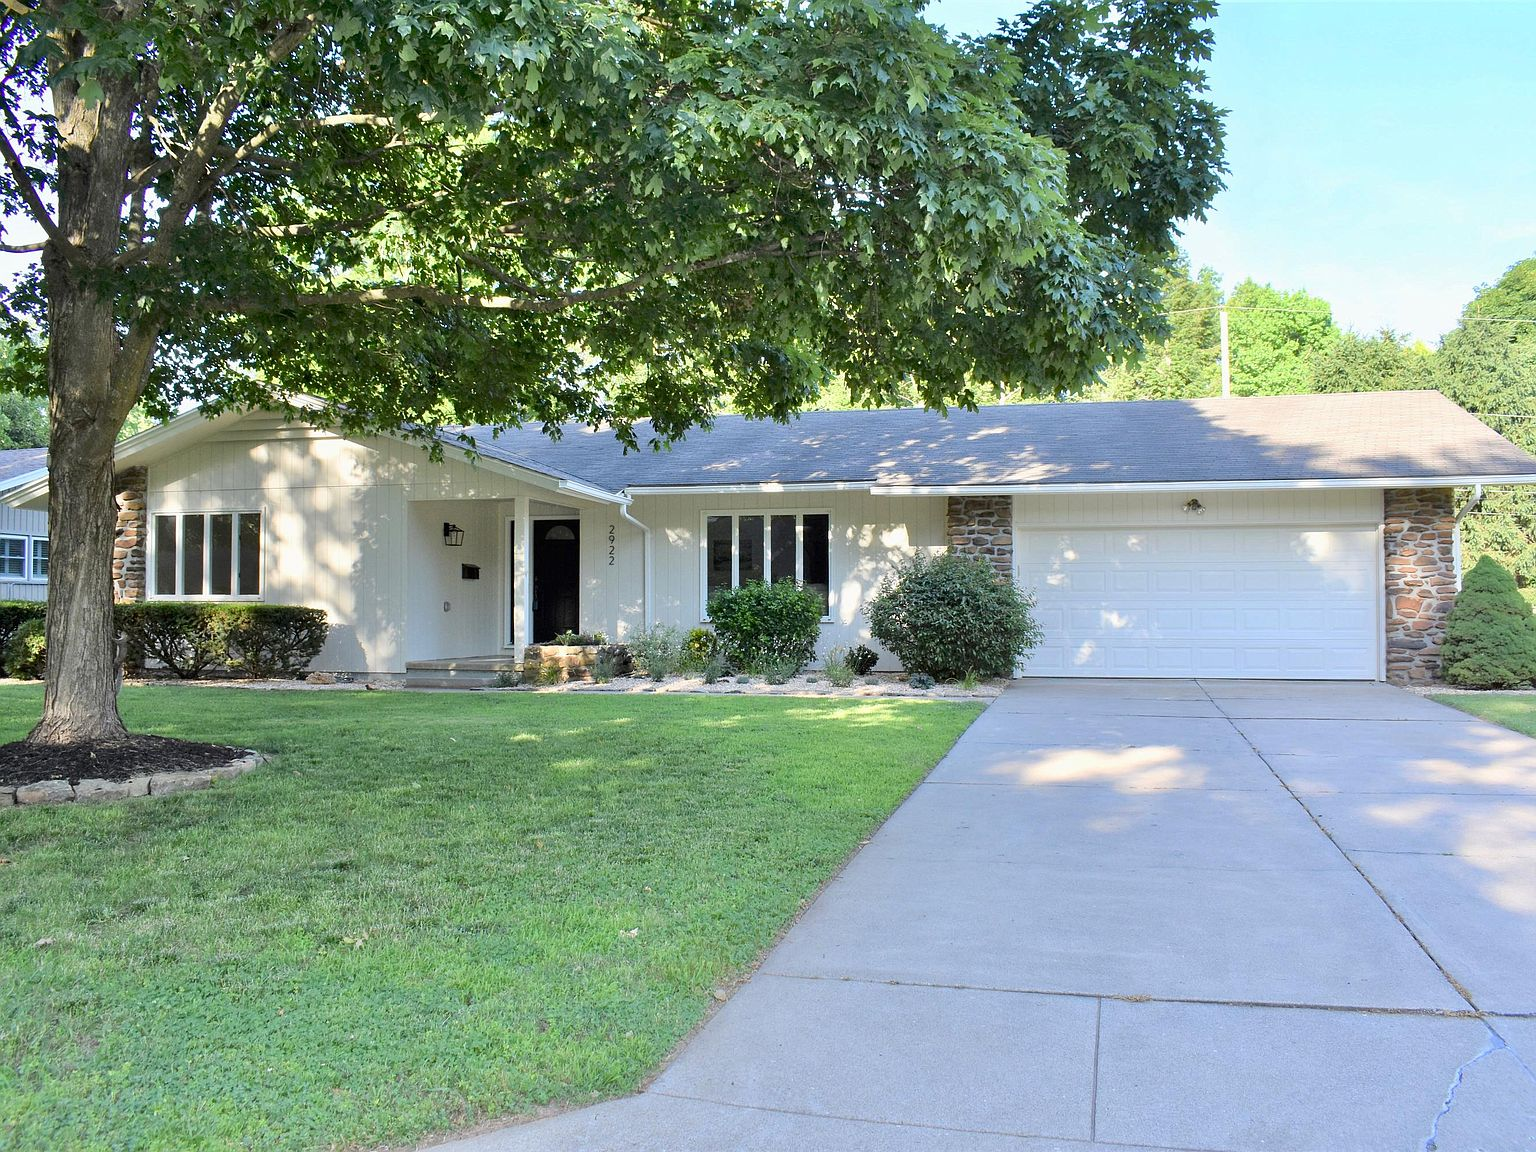 2922 S Marlan Ave Springfield Mo 65804 Zillow